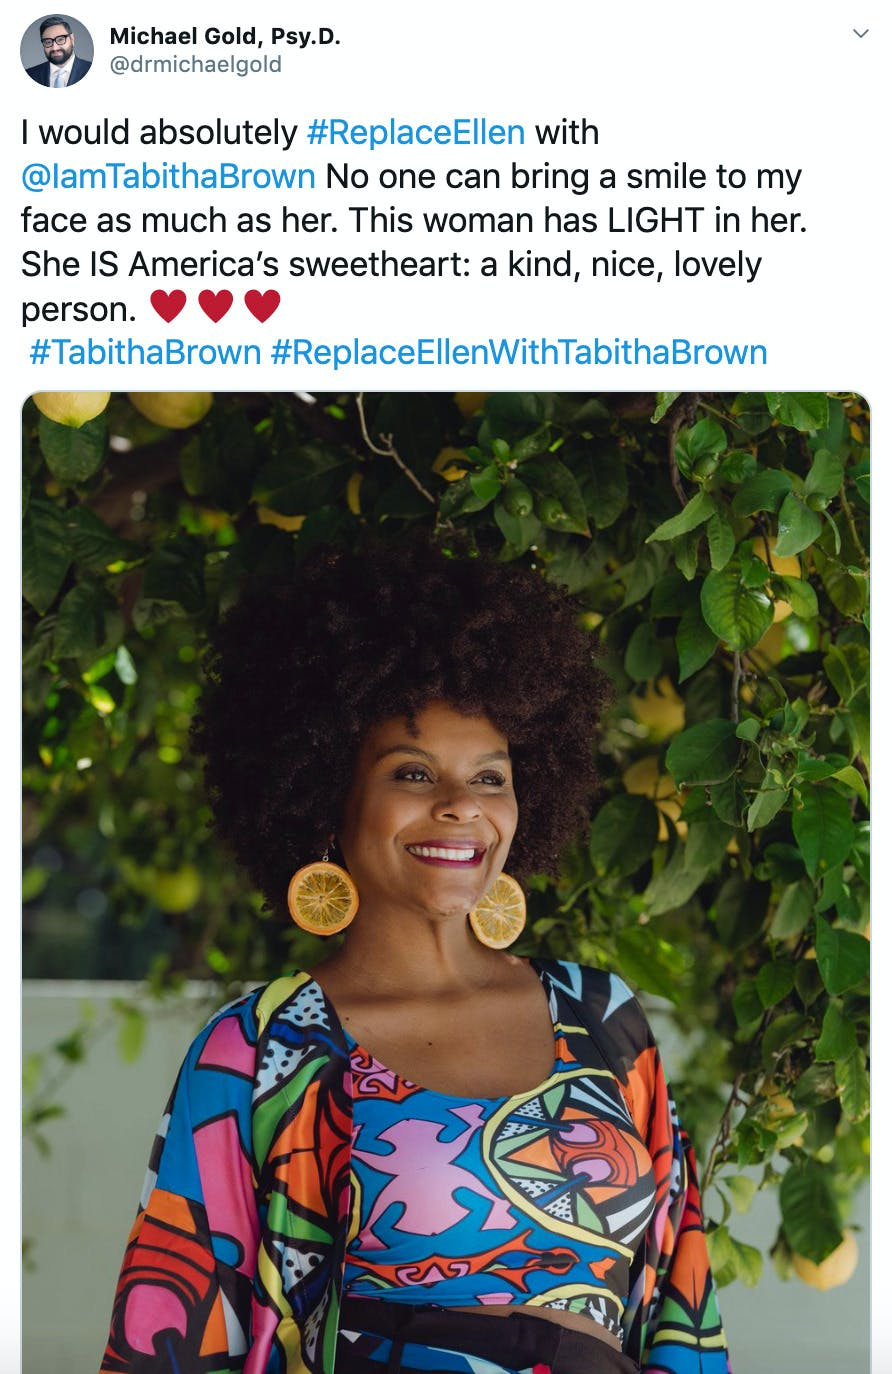 """""""I would absolutely #ReplaceEllen with  @IamTabithaBrown  No one can bring a smile to my face as much as her. This woman has LIGHT in her. She IS America's sweetheart: a kind, nice, lovely person. ♥️♥️♥️ #TabithaBrown #ReplaceEllenWithTabithaBrown"""" image of Tabitha Brown smiling below a tree"""